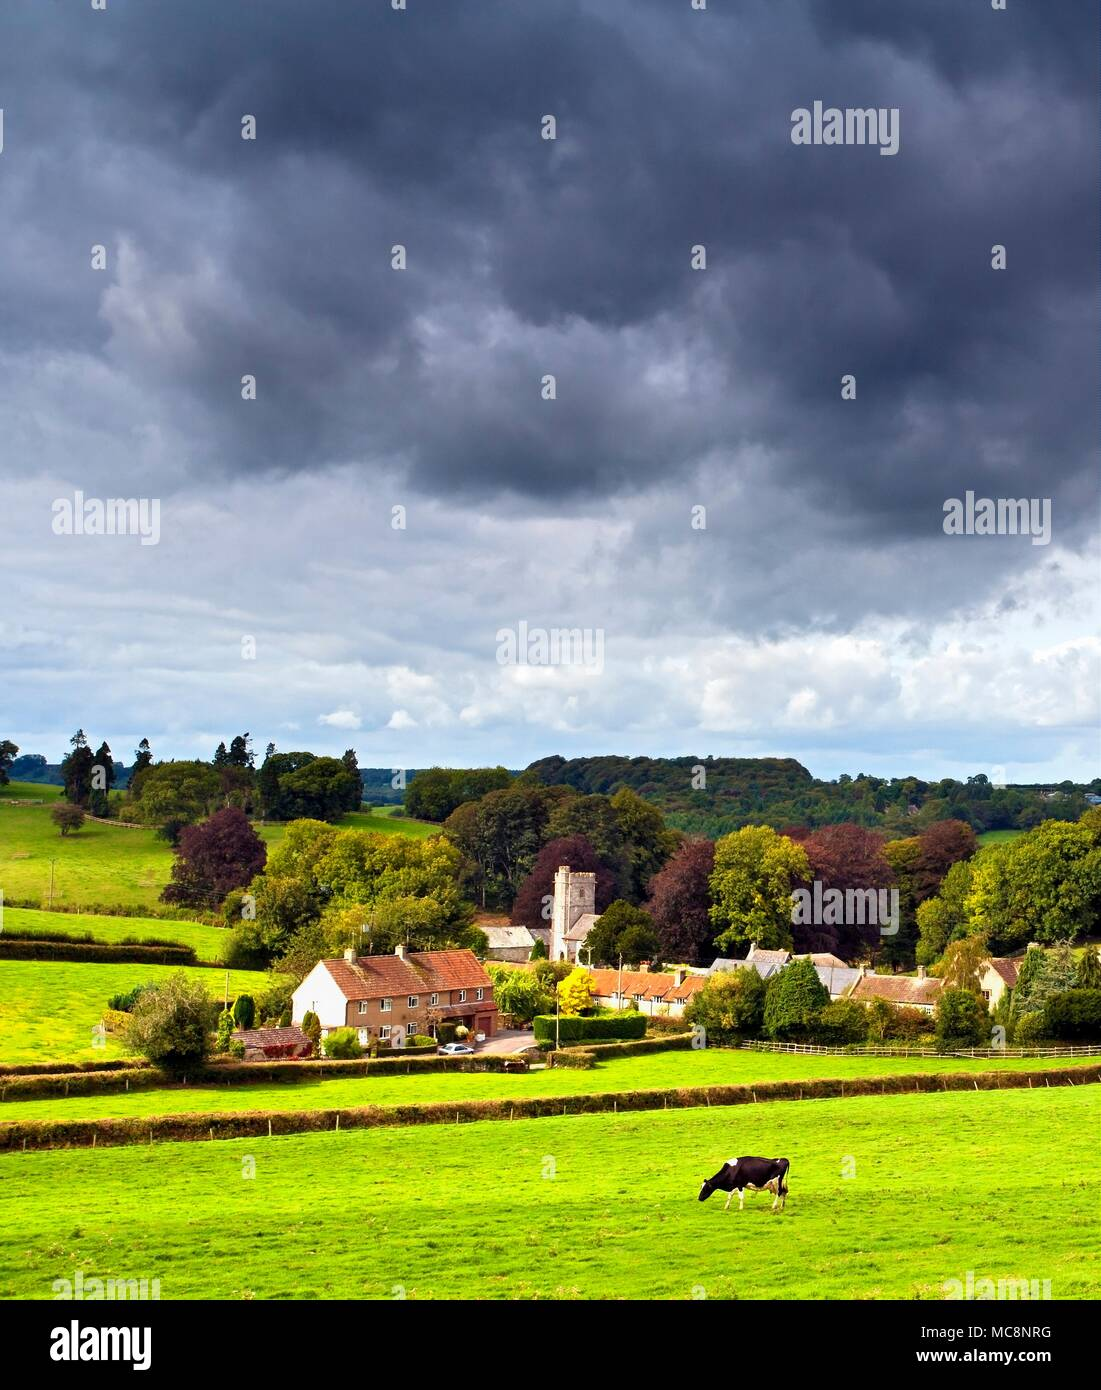 A summer view of the picturesque village of Whitestaunton  in rural Somerset, England. Stock Photo